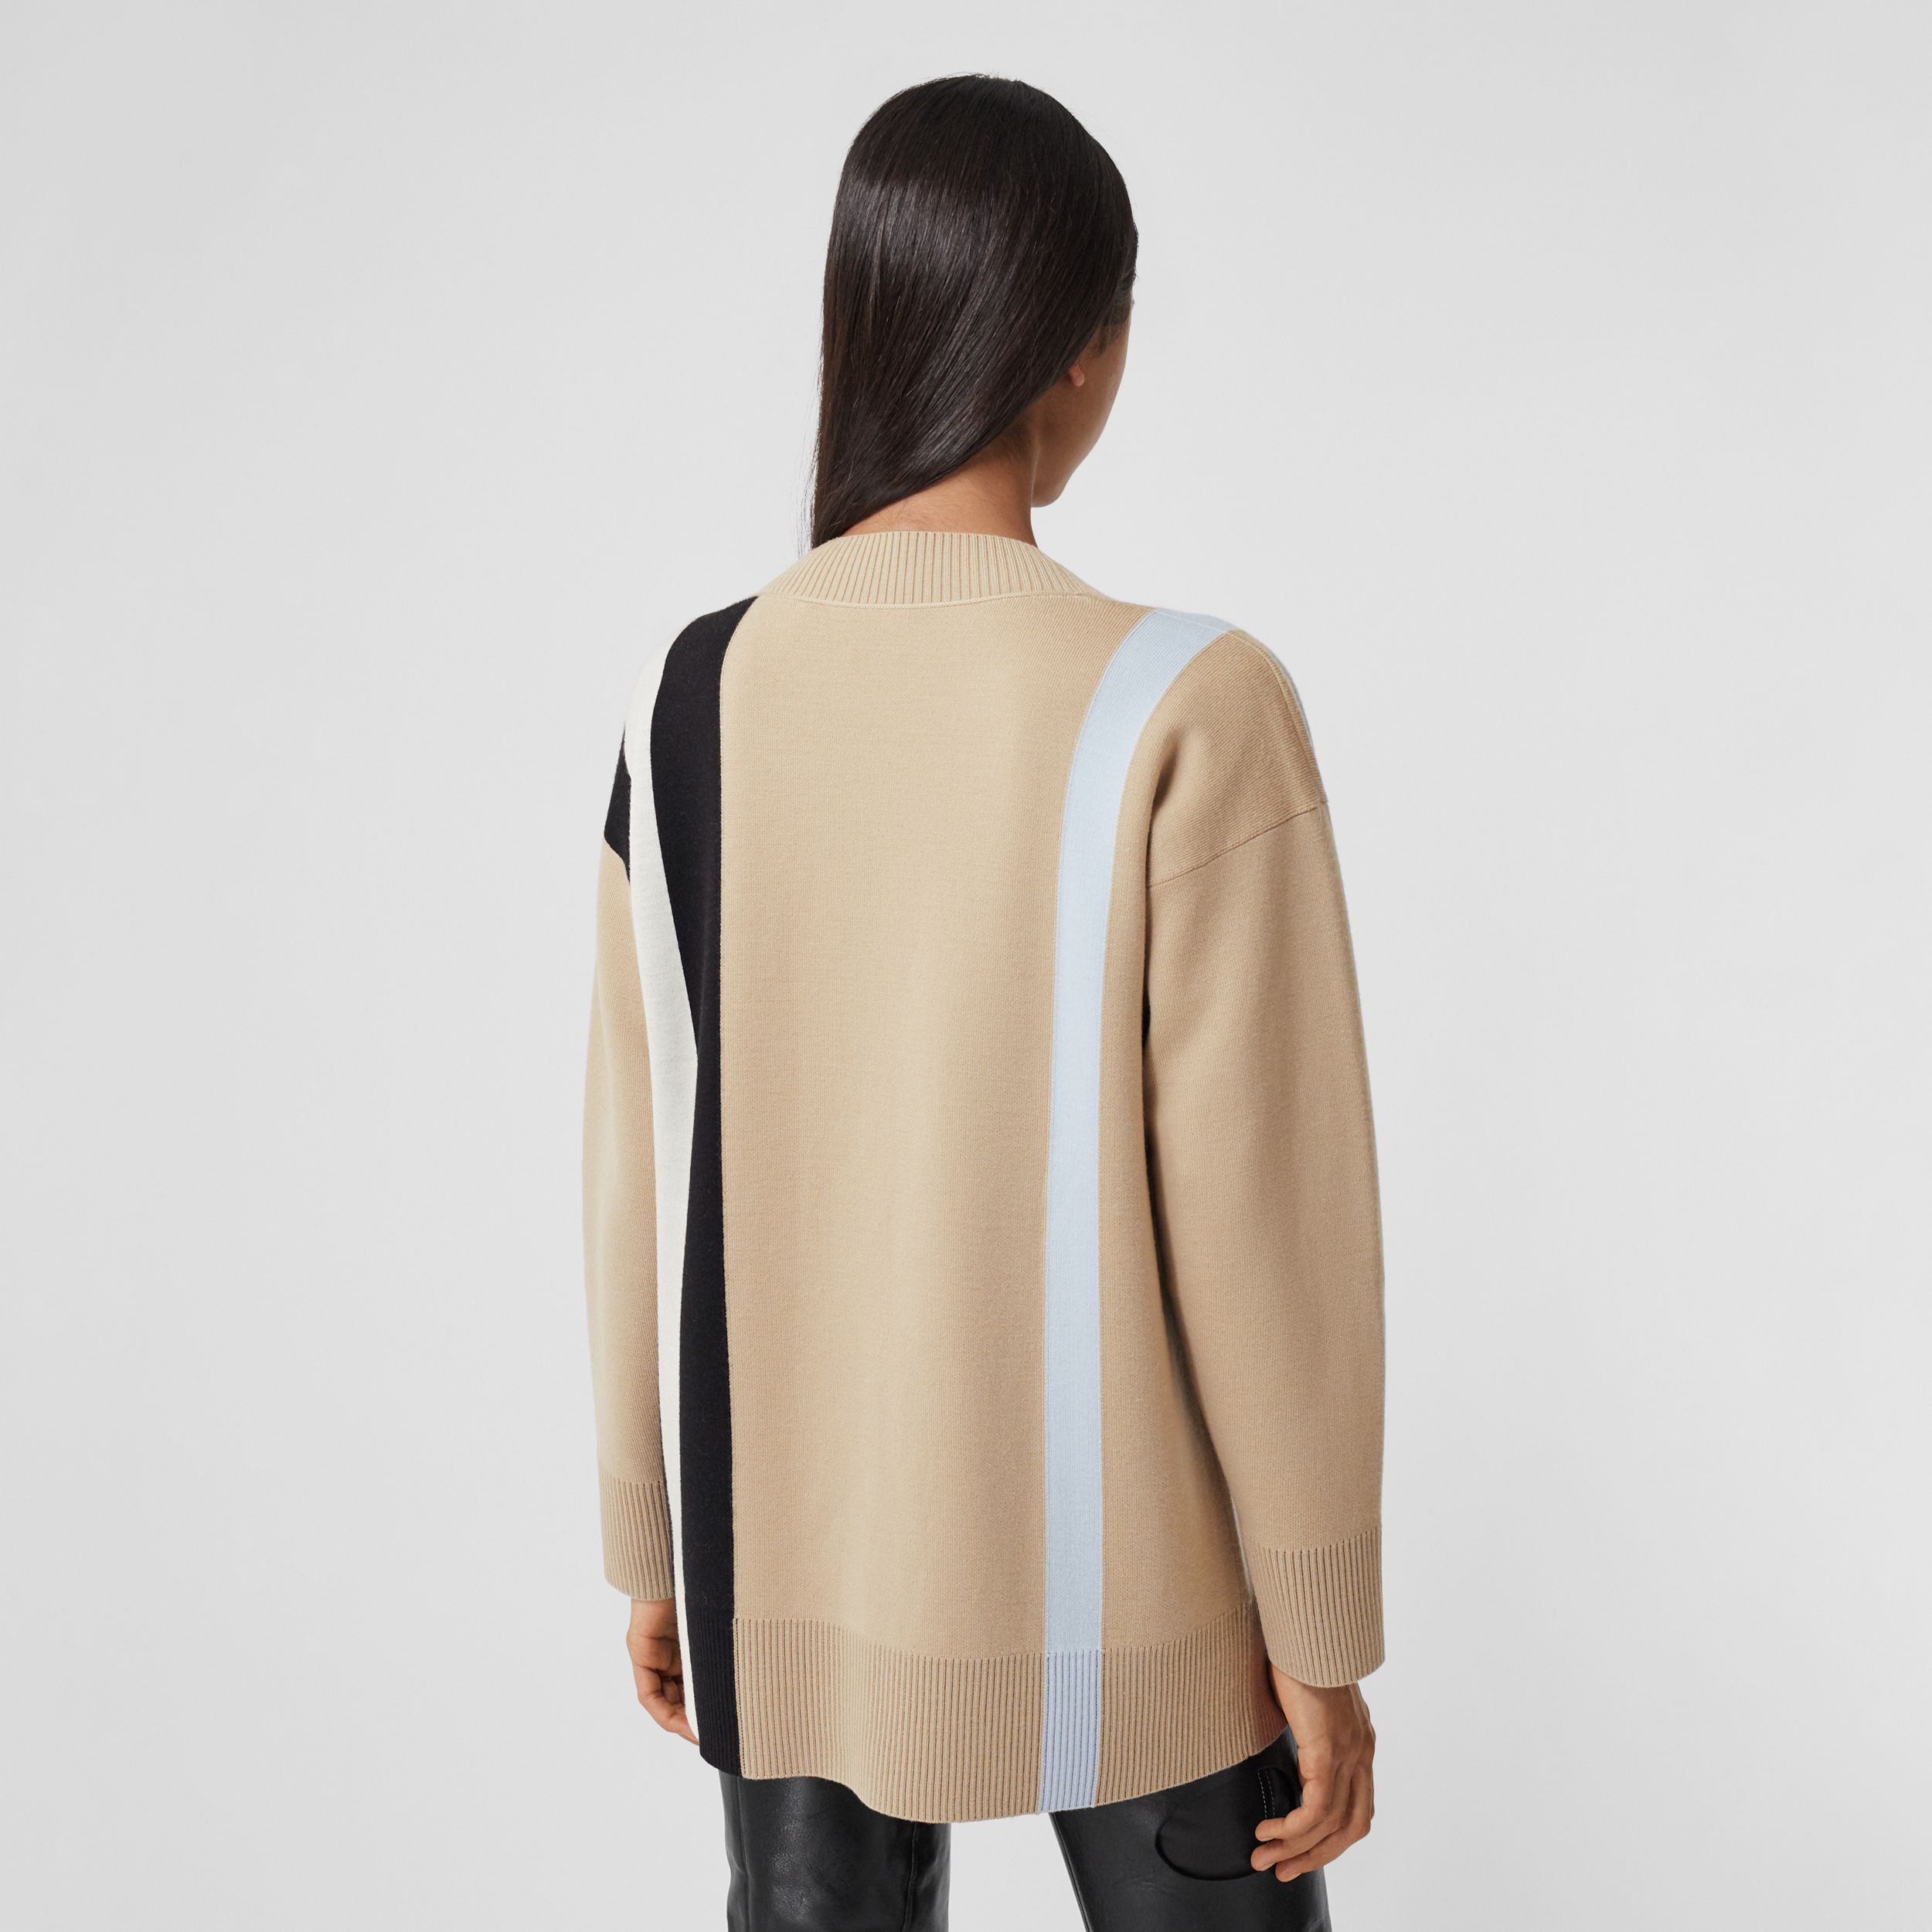 Logo Merino Wool Blend Jacquard Cardigan in Soft Fawn - Women | Burberry - 3